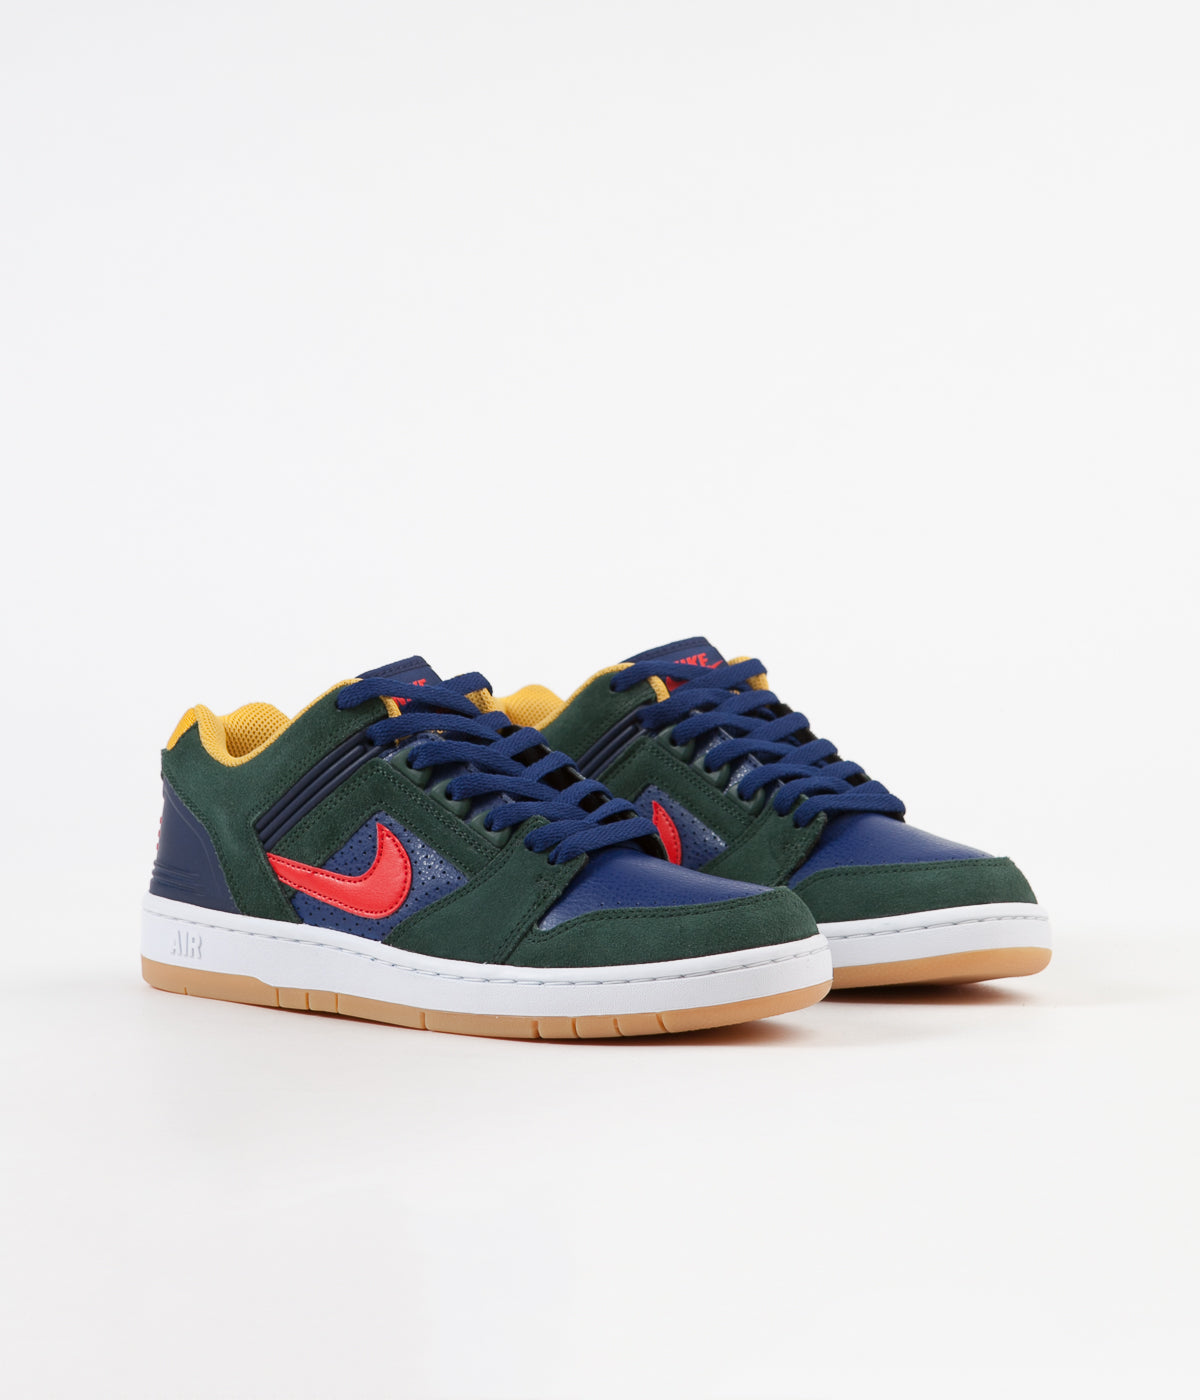 Nike SB Air Force II Low Shoes - Midnight Green / Habanero Red - Blue Void